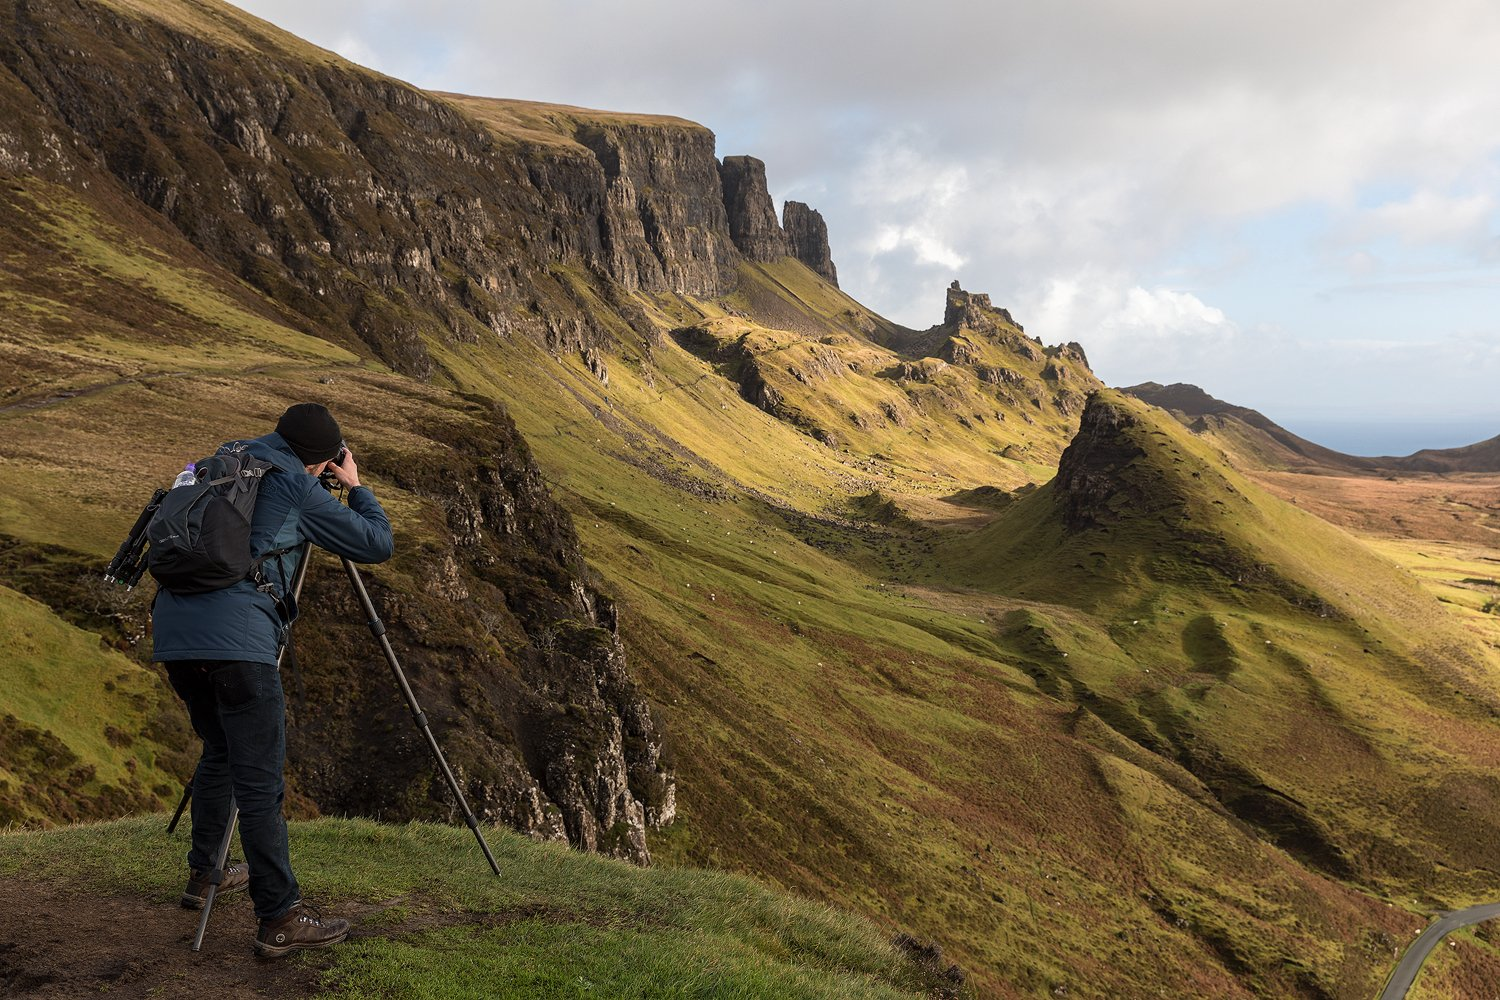 Glenn Davis lines up a photo at the Quiraing on the Isle of Skye. (glenndavisphotography.com)